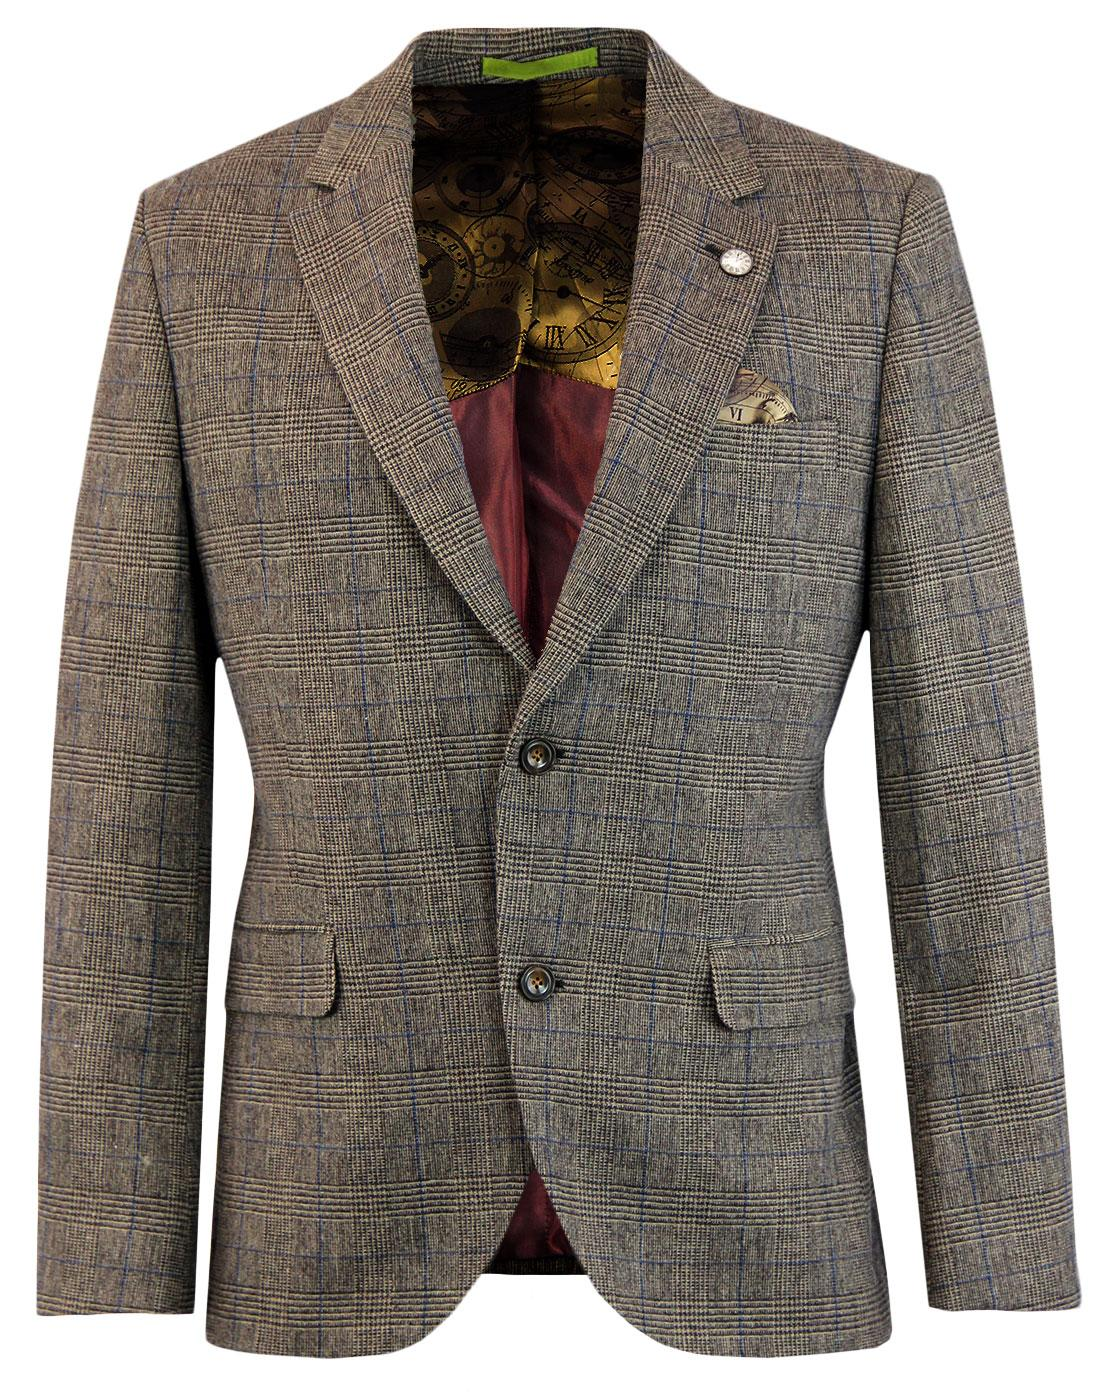 Towergate GIBSON LONDON Mod PoW Check Suit Jacket